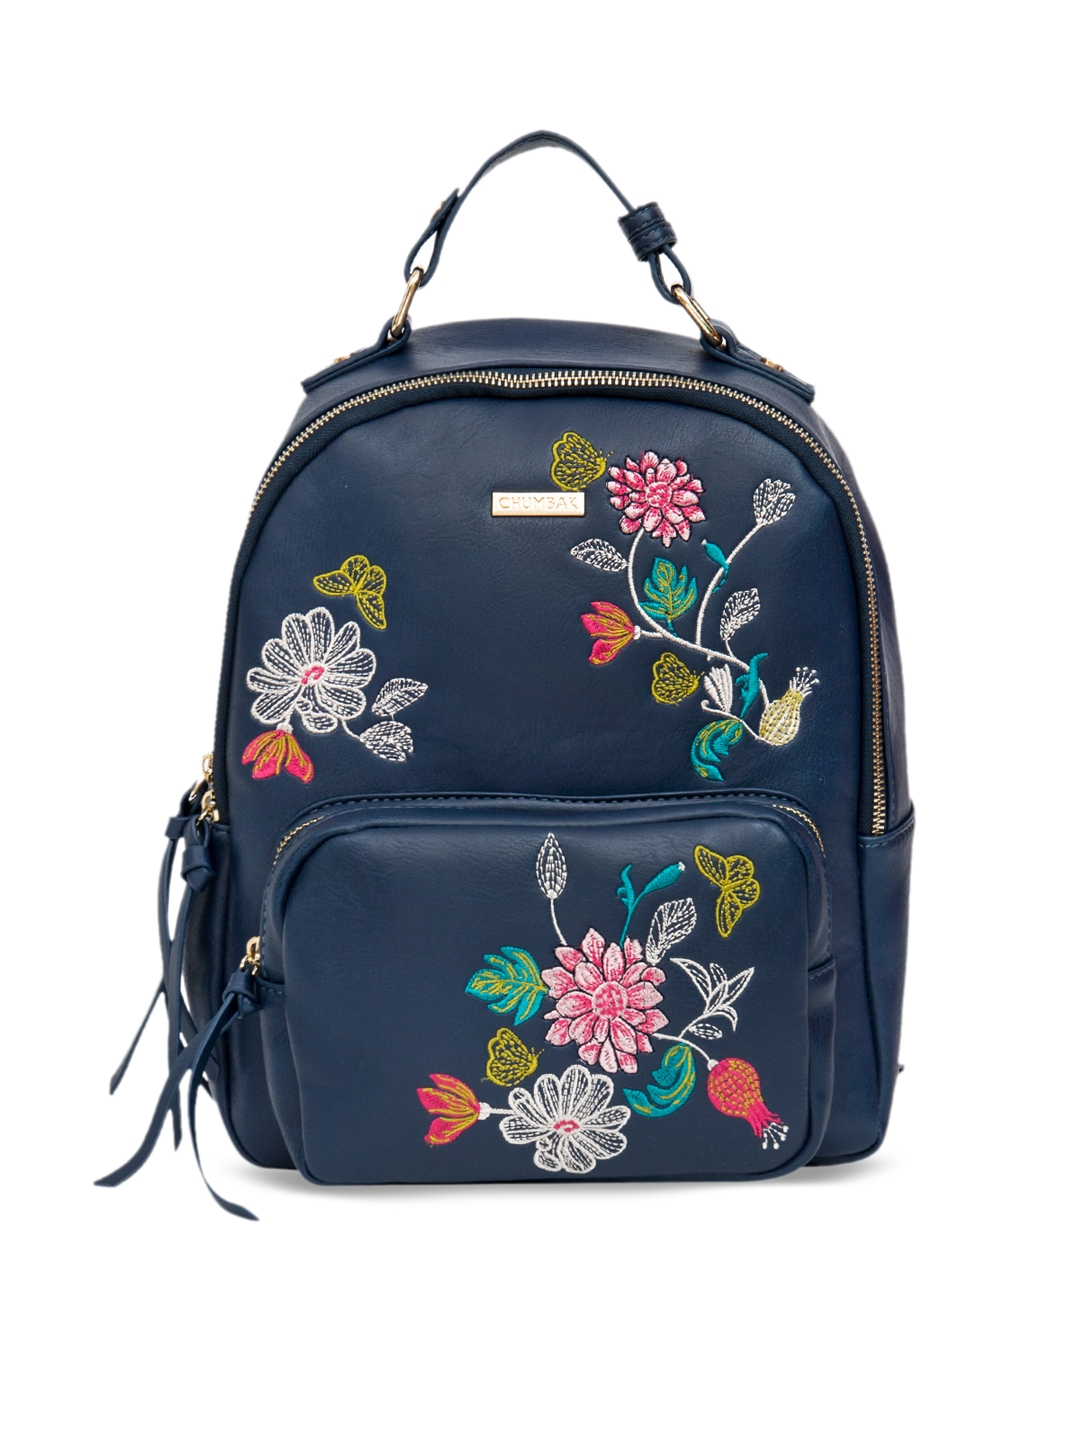 35729c3f358e Buy Chumbak Women Navy Blue Embroidered Backpack - Backpacks for ...